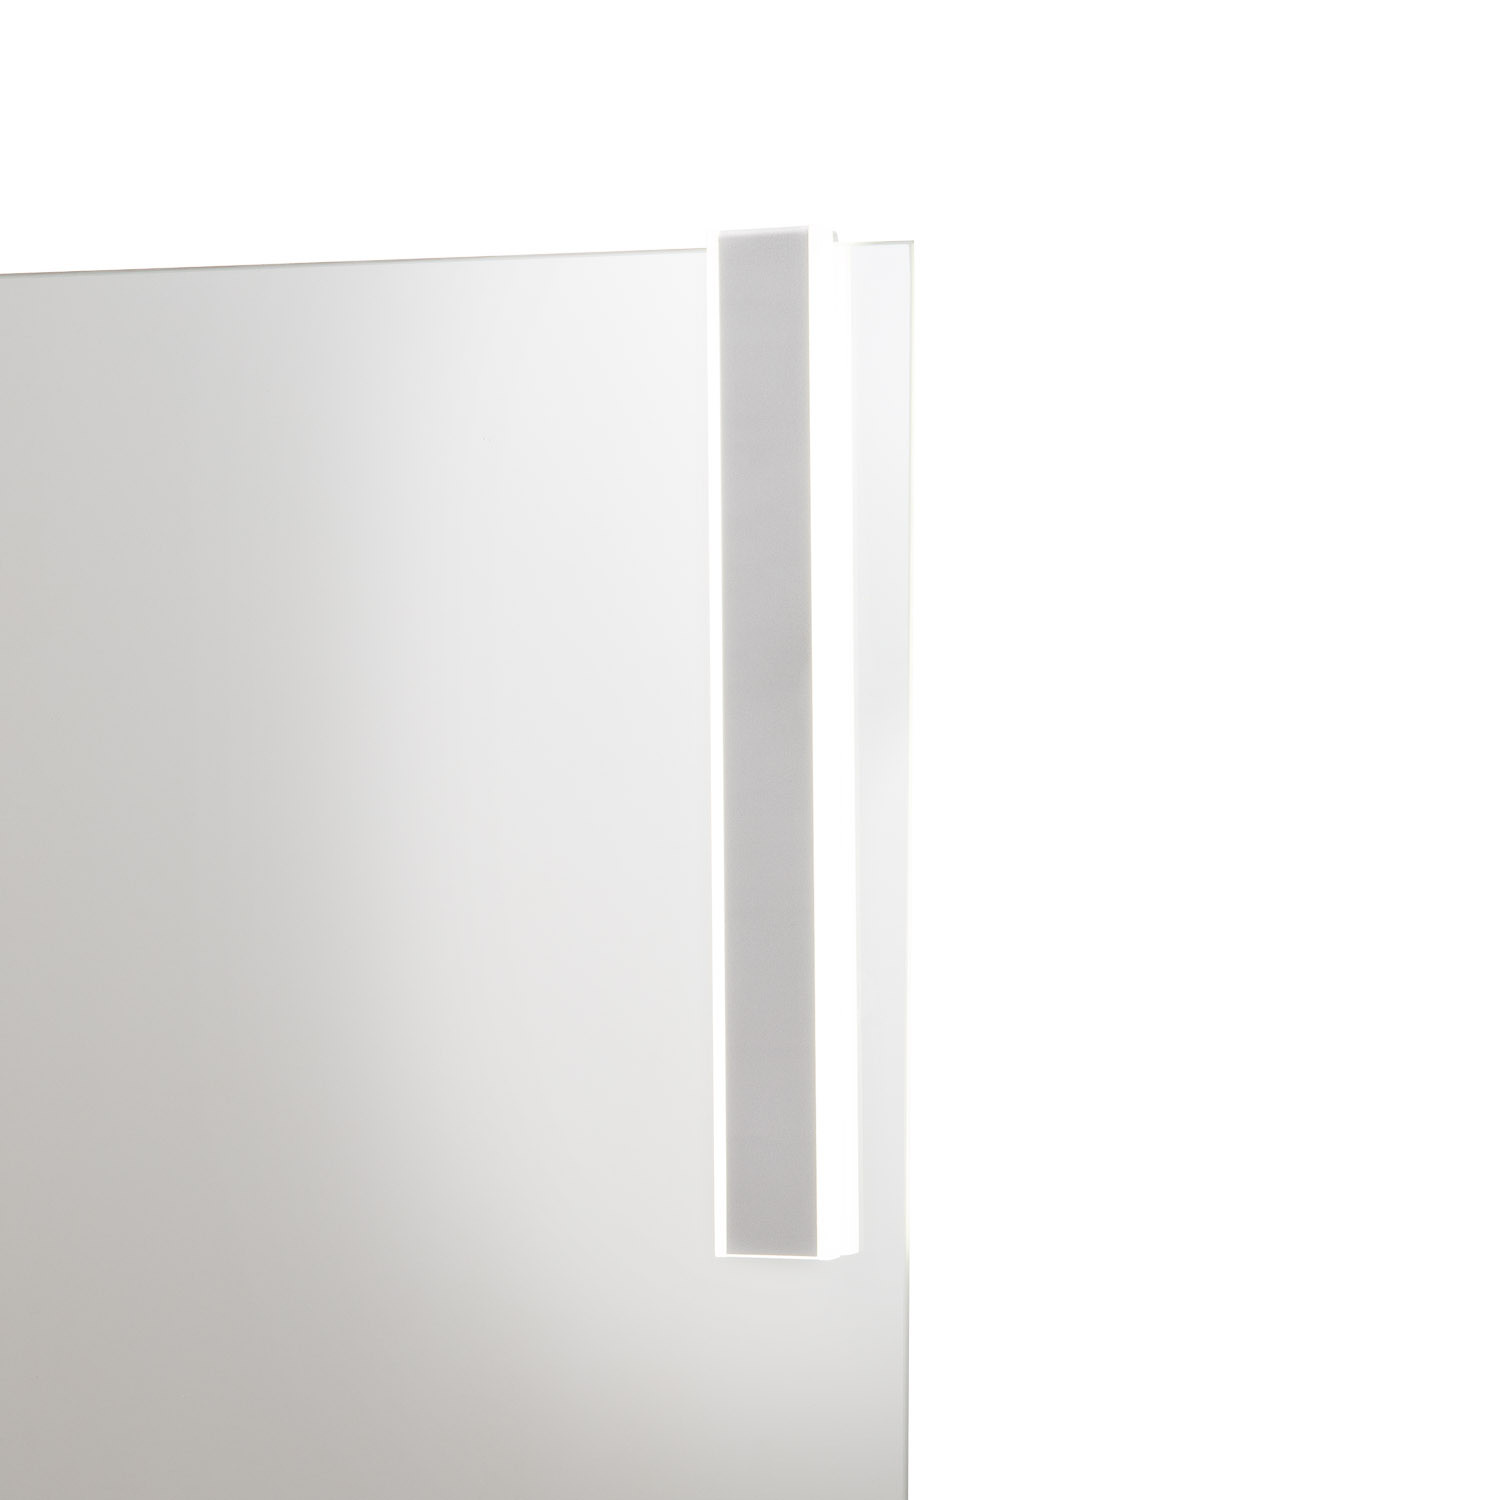 Mium LED Wall Light, gallery image 1